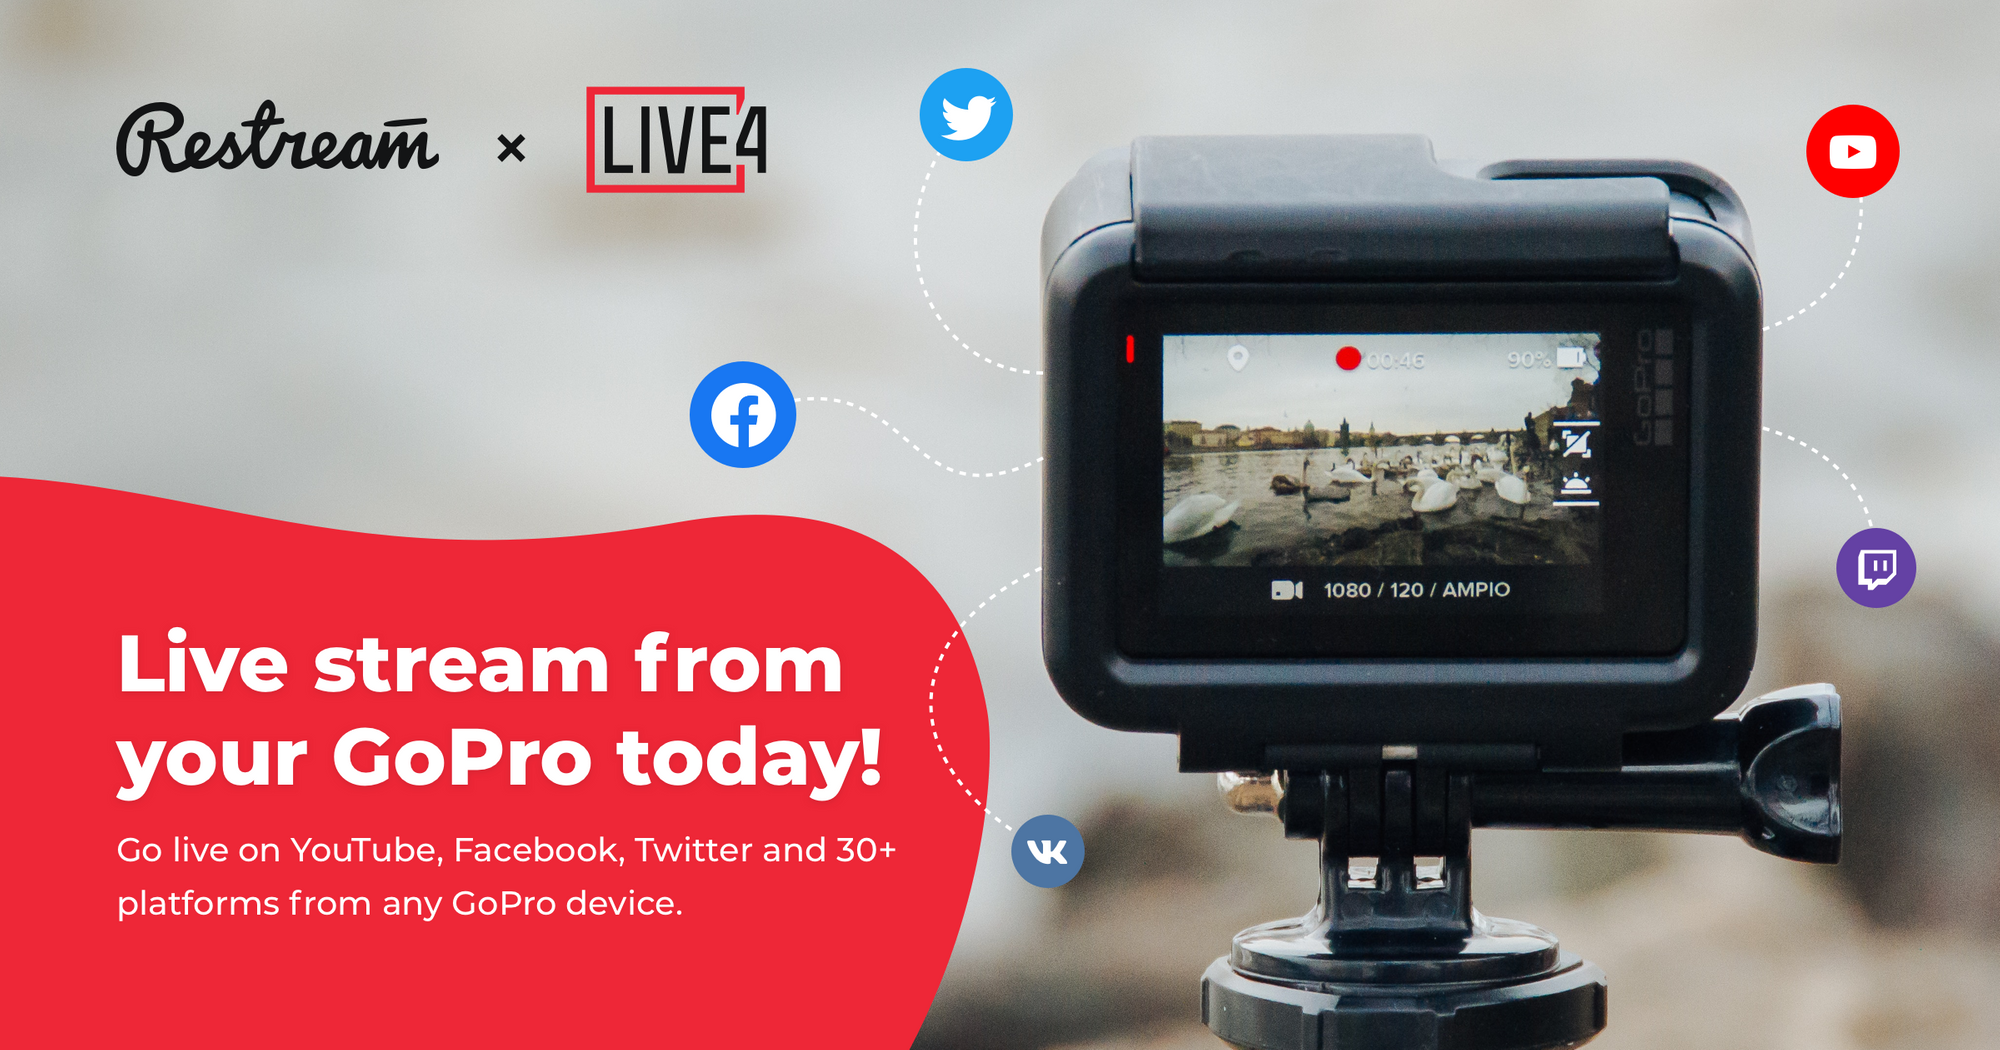 Live stream from your GoPro with Restream and LIVE4